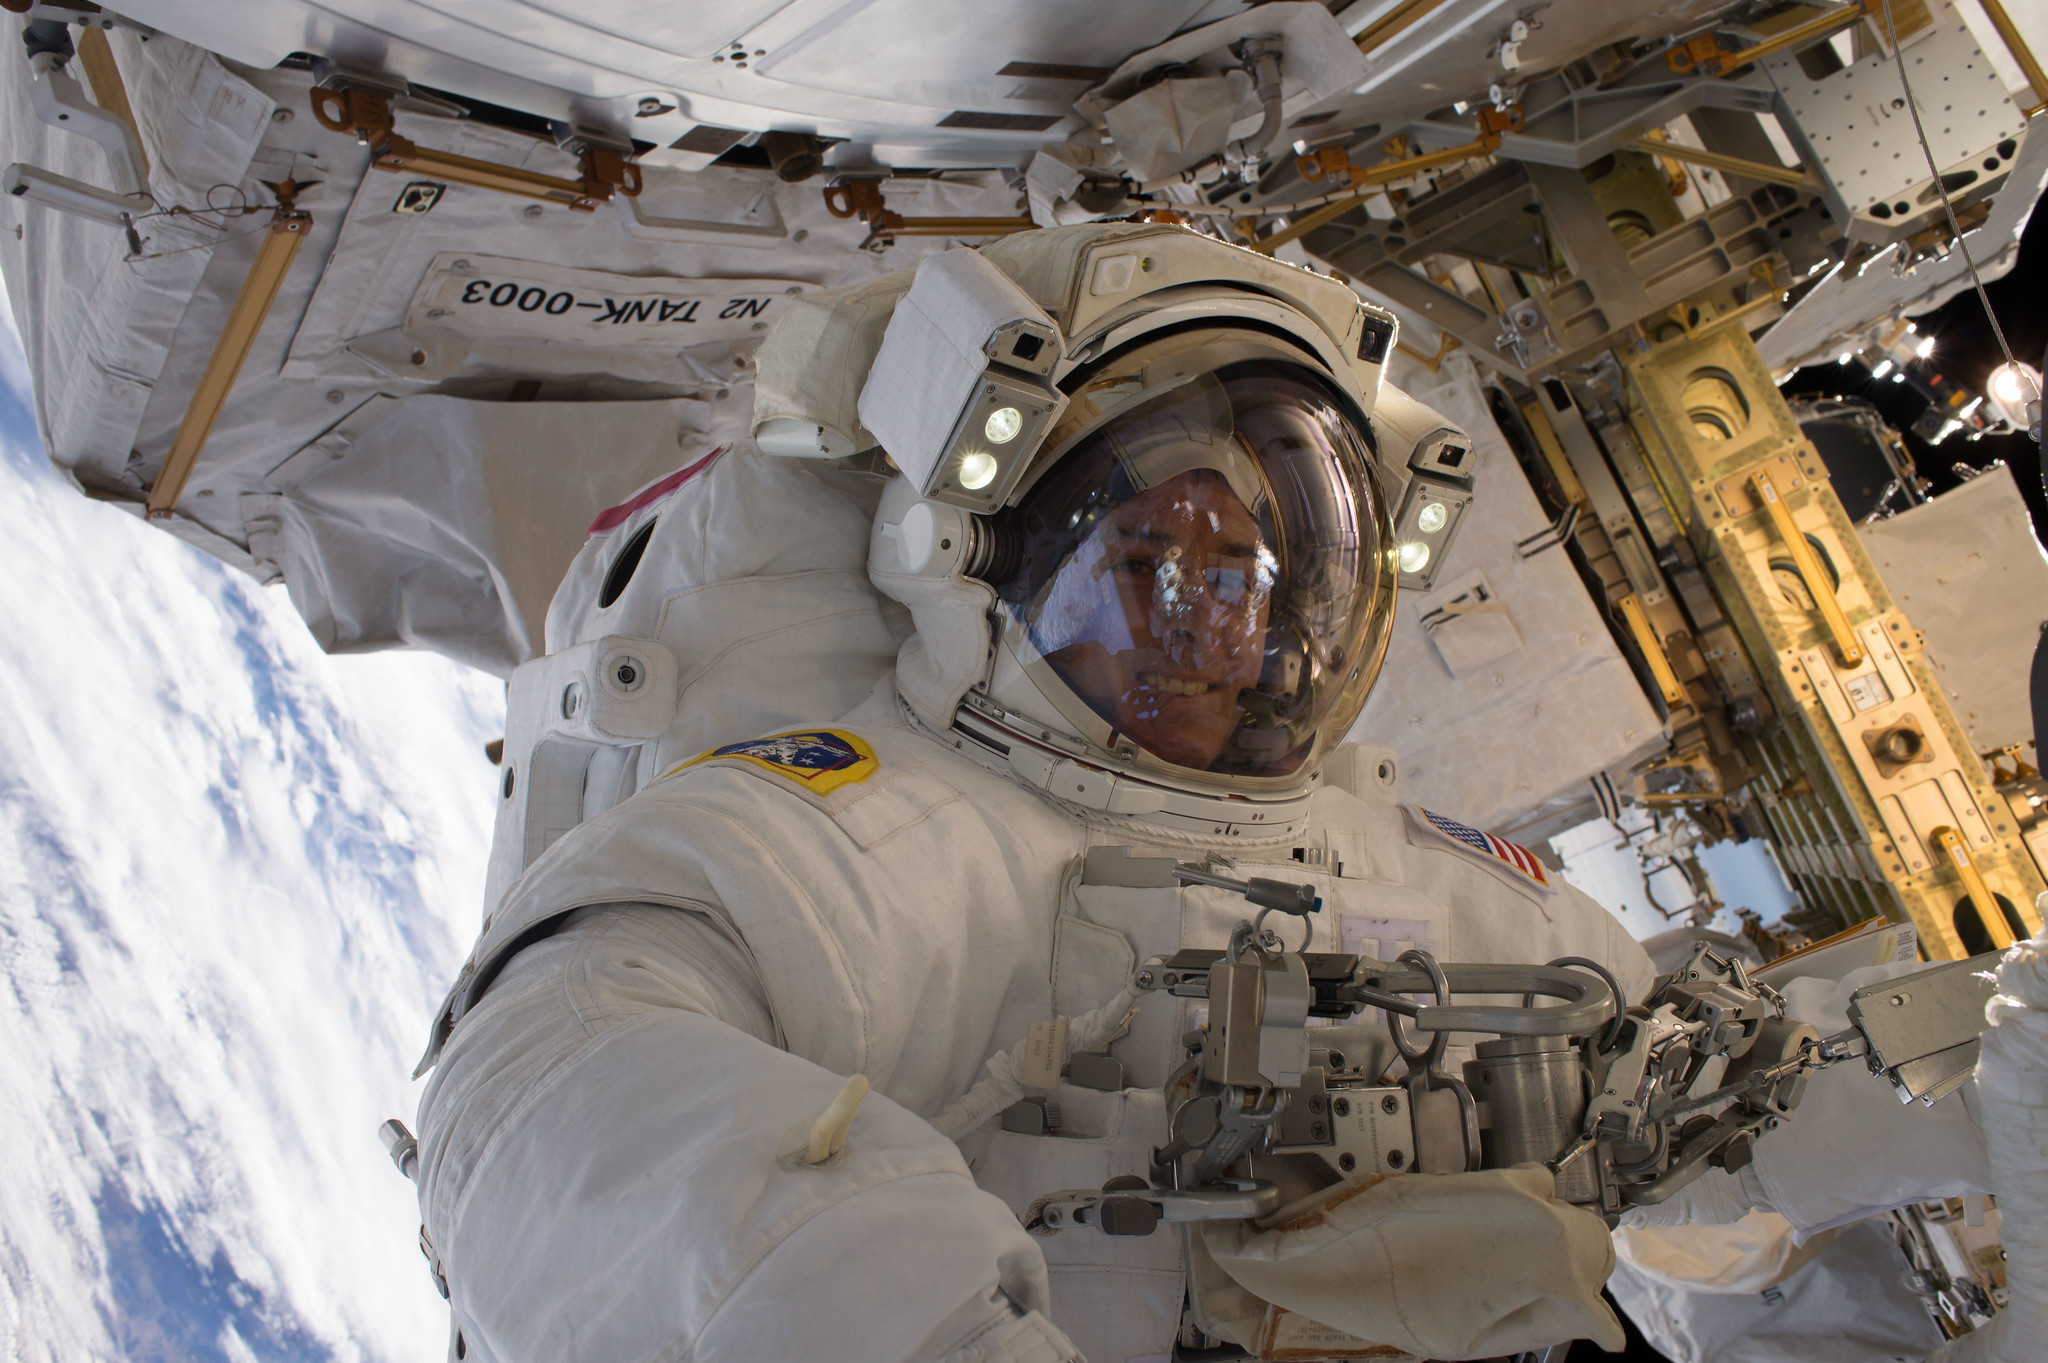 NASA astronaut Shane Kimbrough photographed during a spacewalk in January 2017.